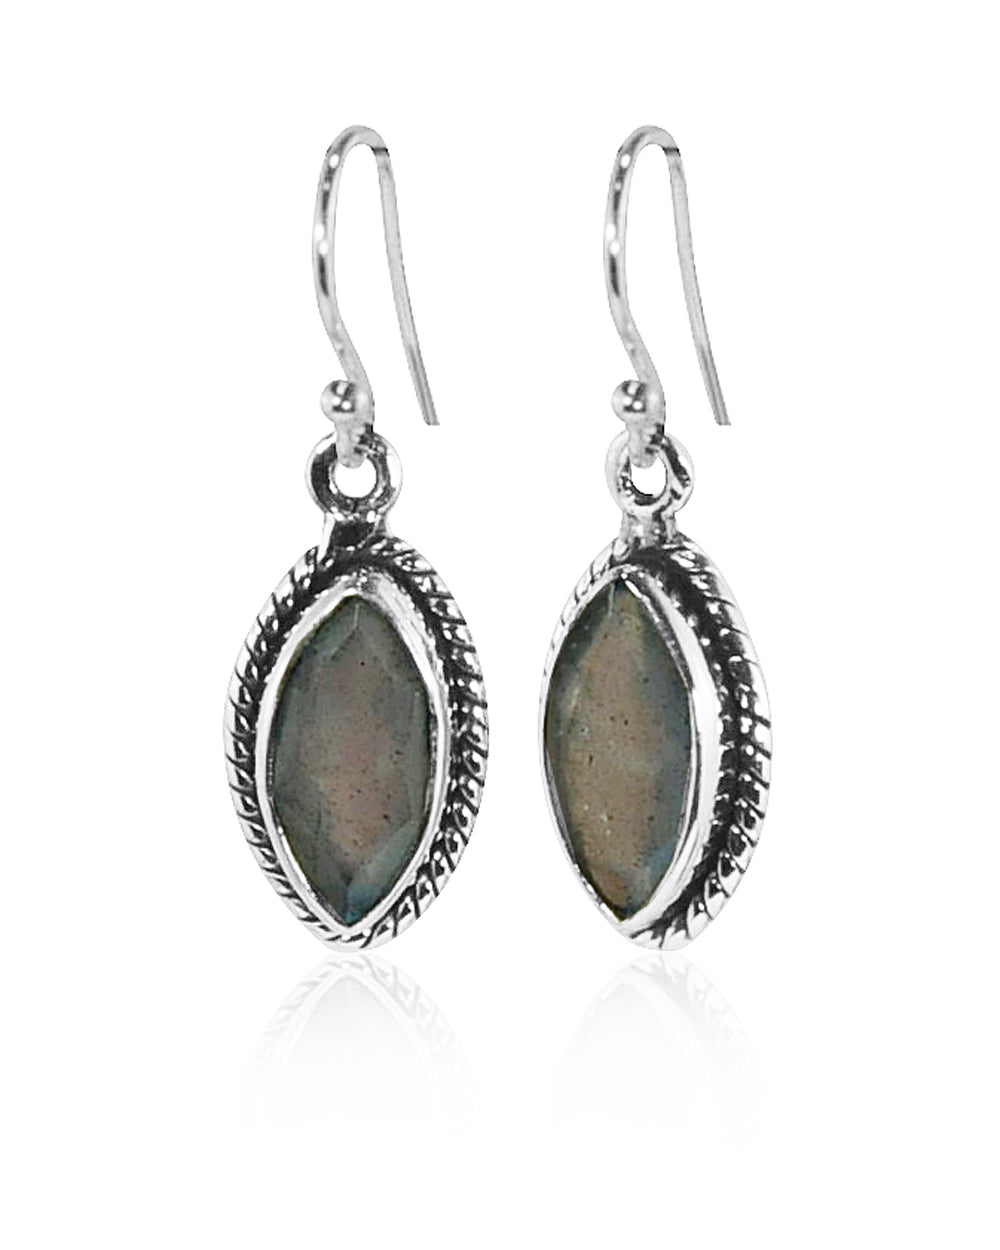 Ananda Sterling Silver Earrings - Labradorite